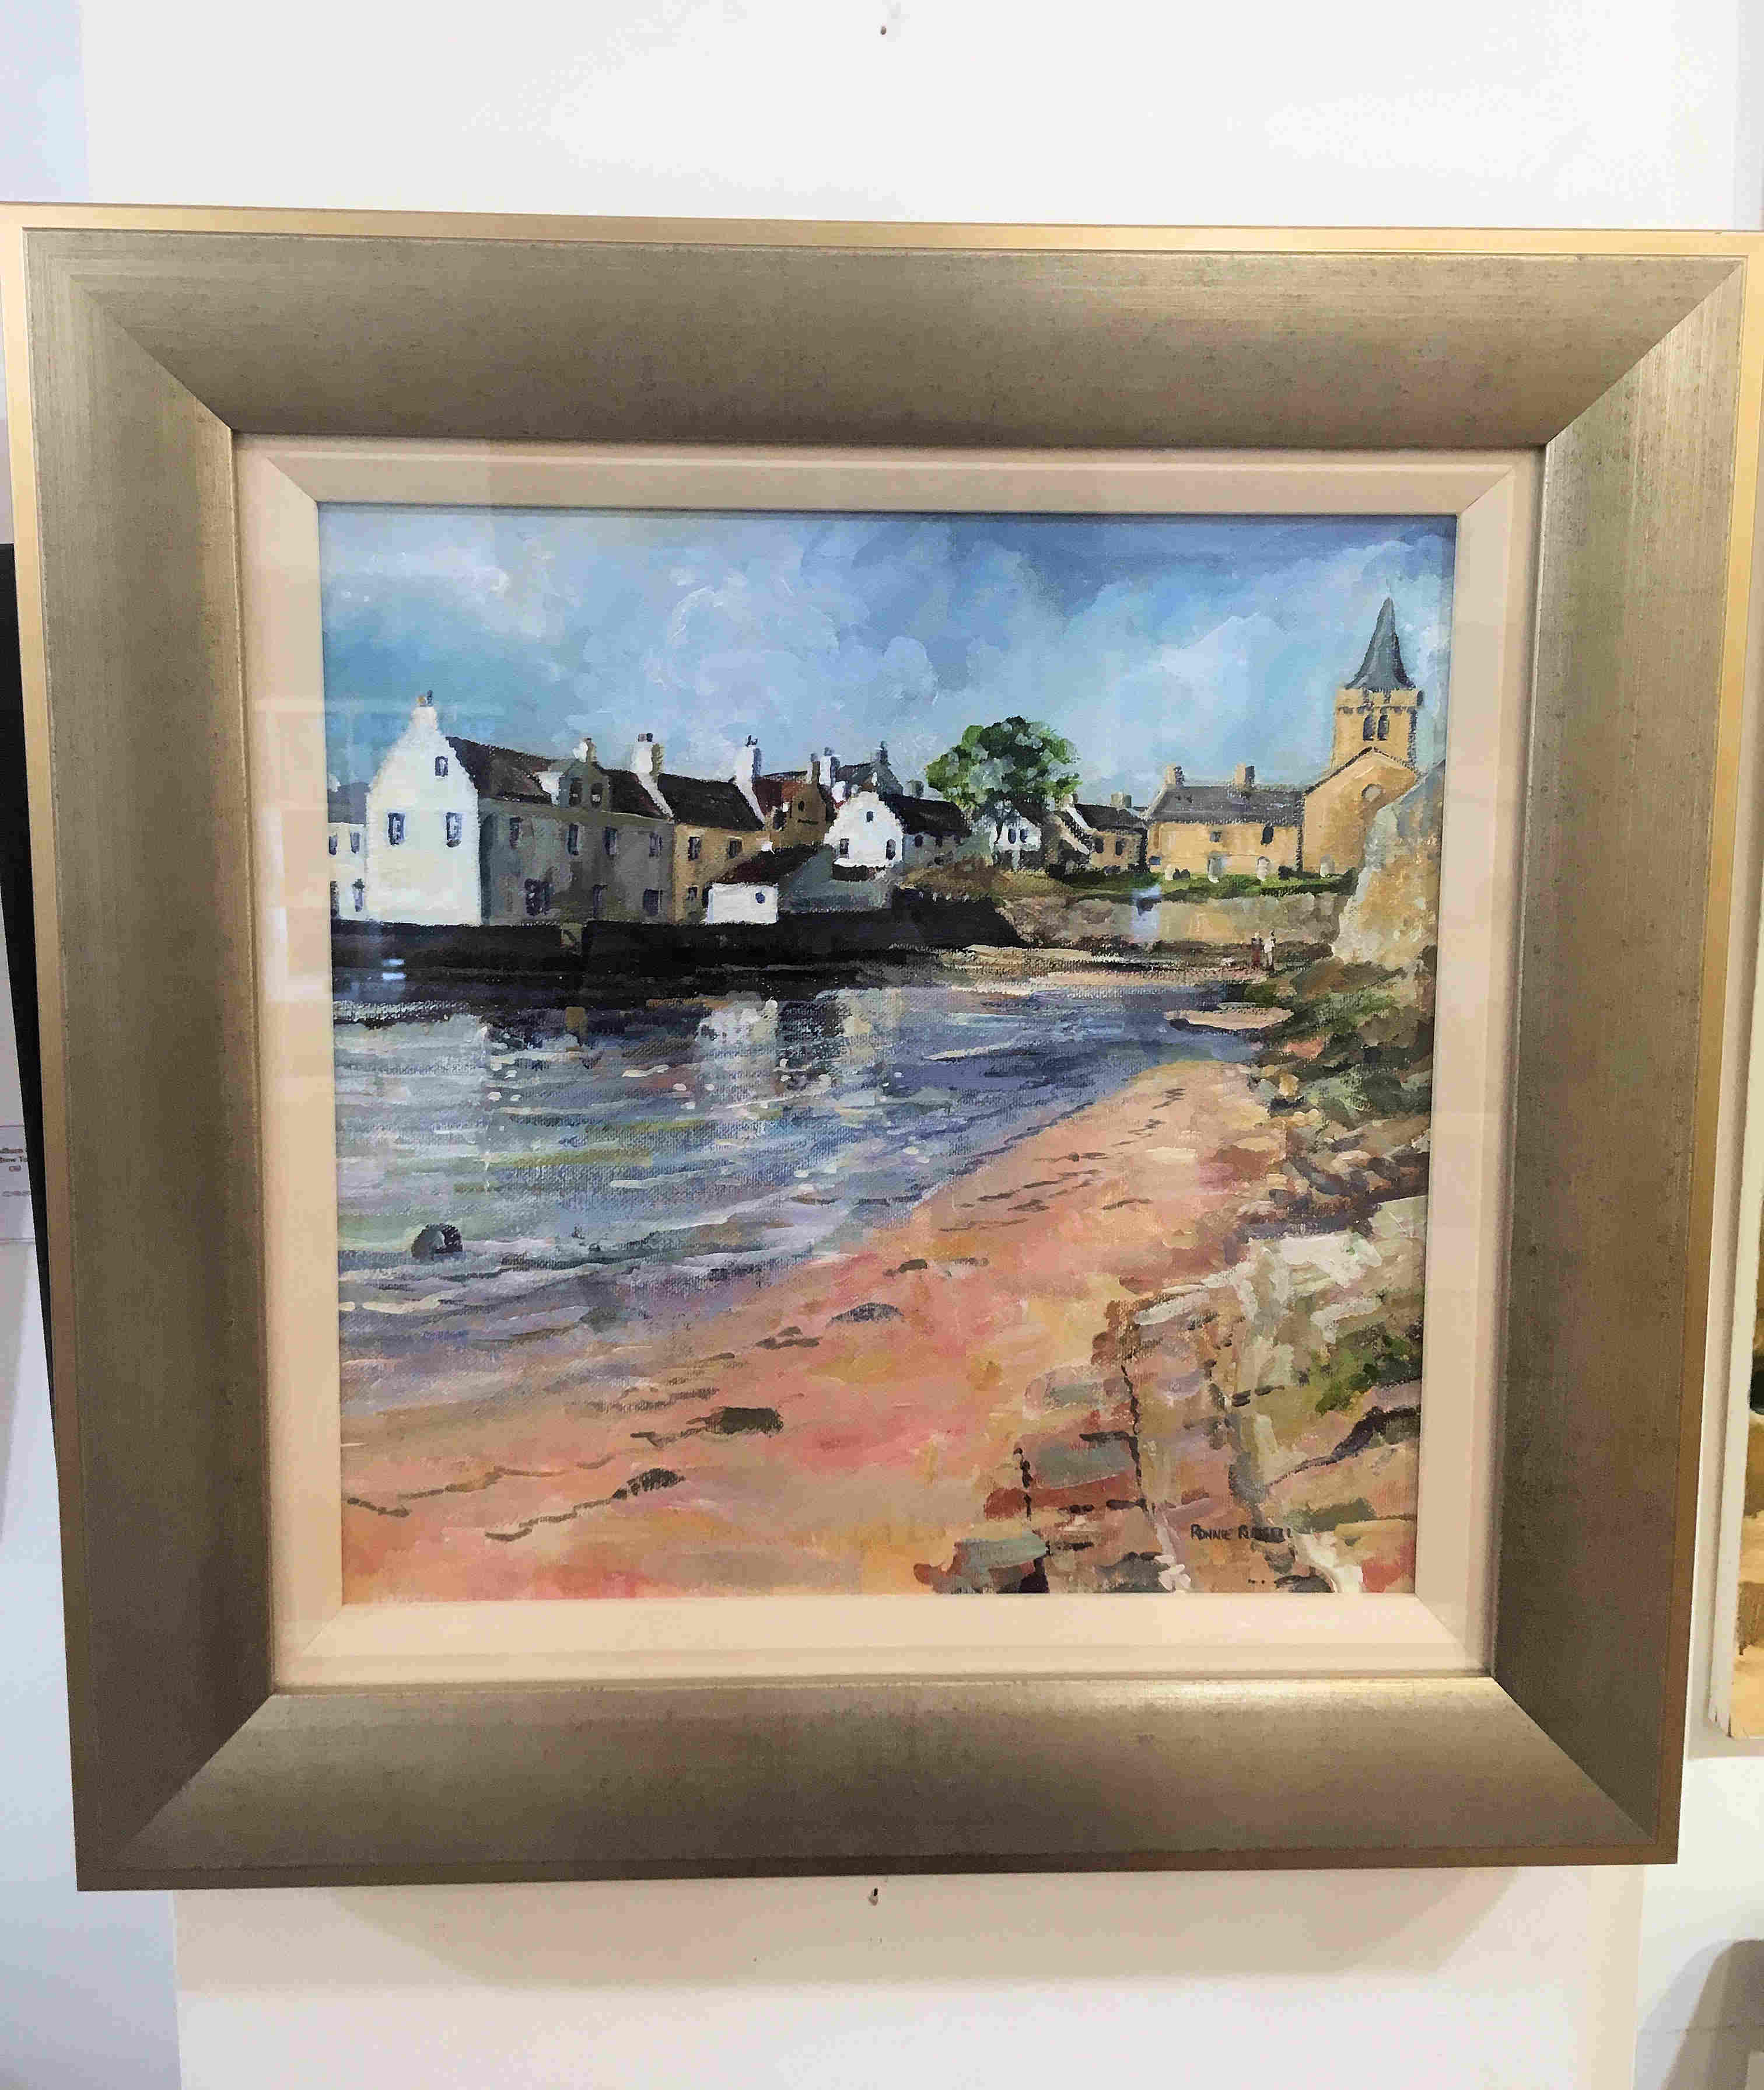 'Reflections, Anstruther' by artist Ronnie Russell